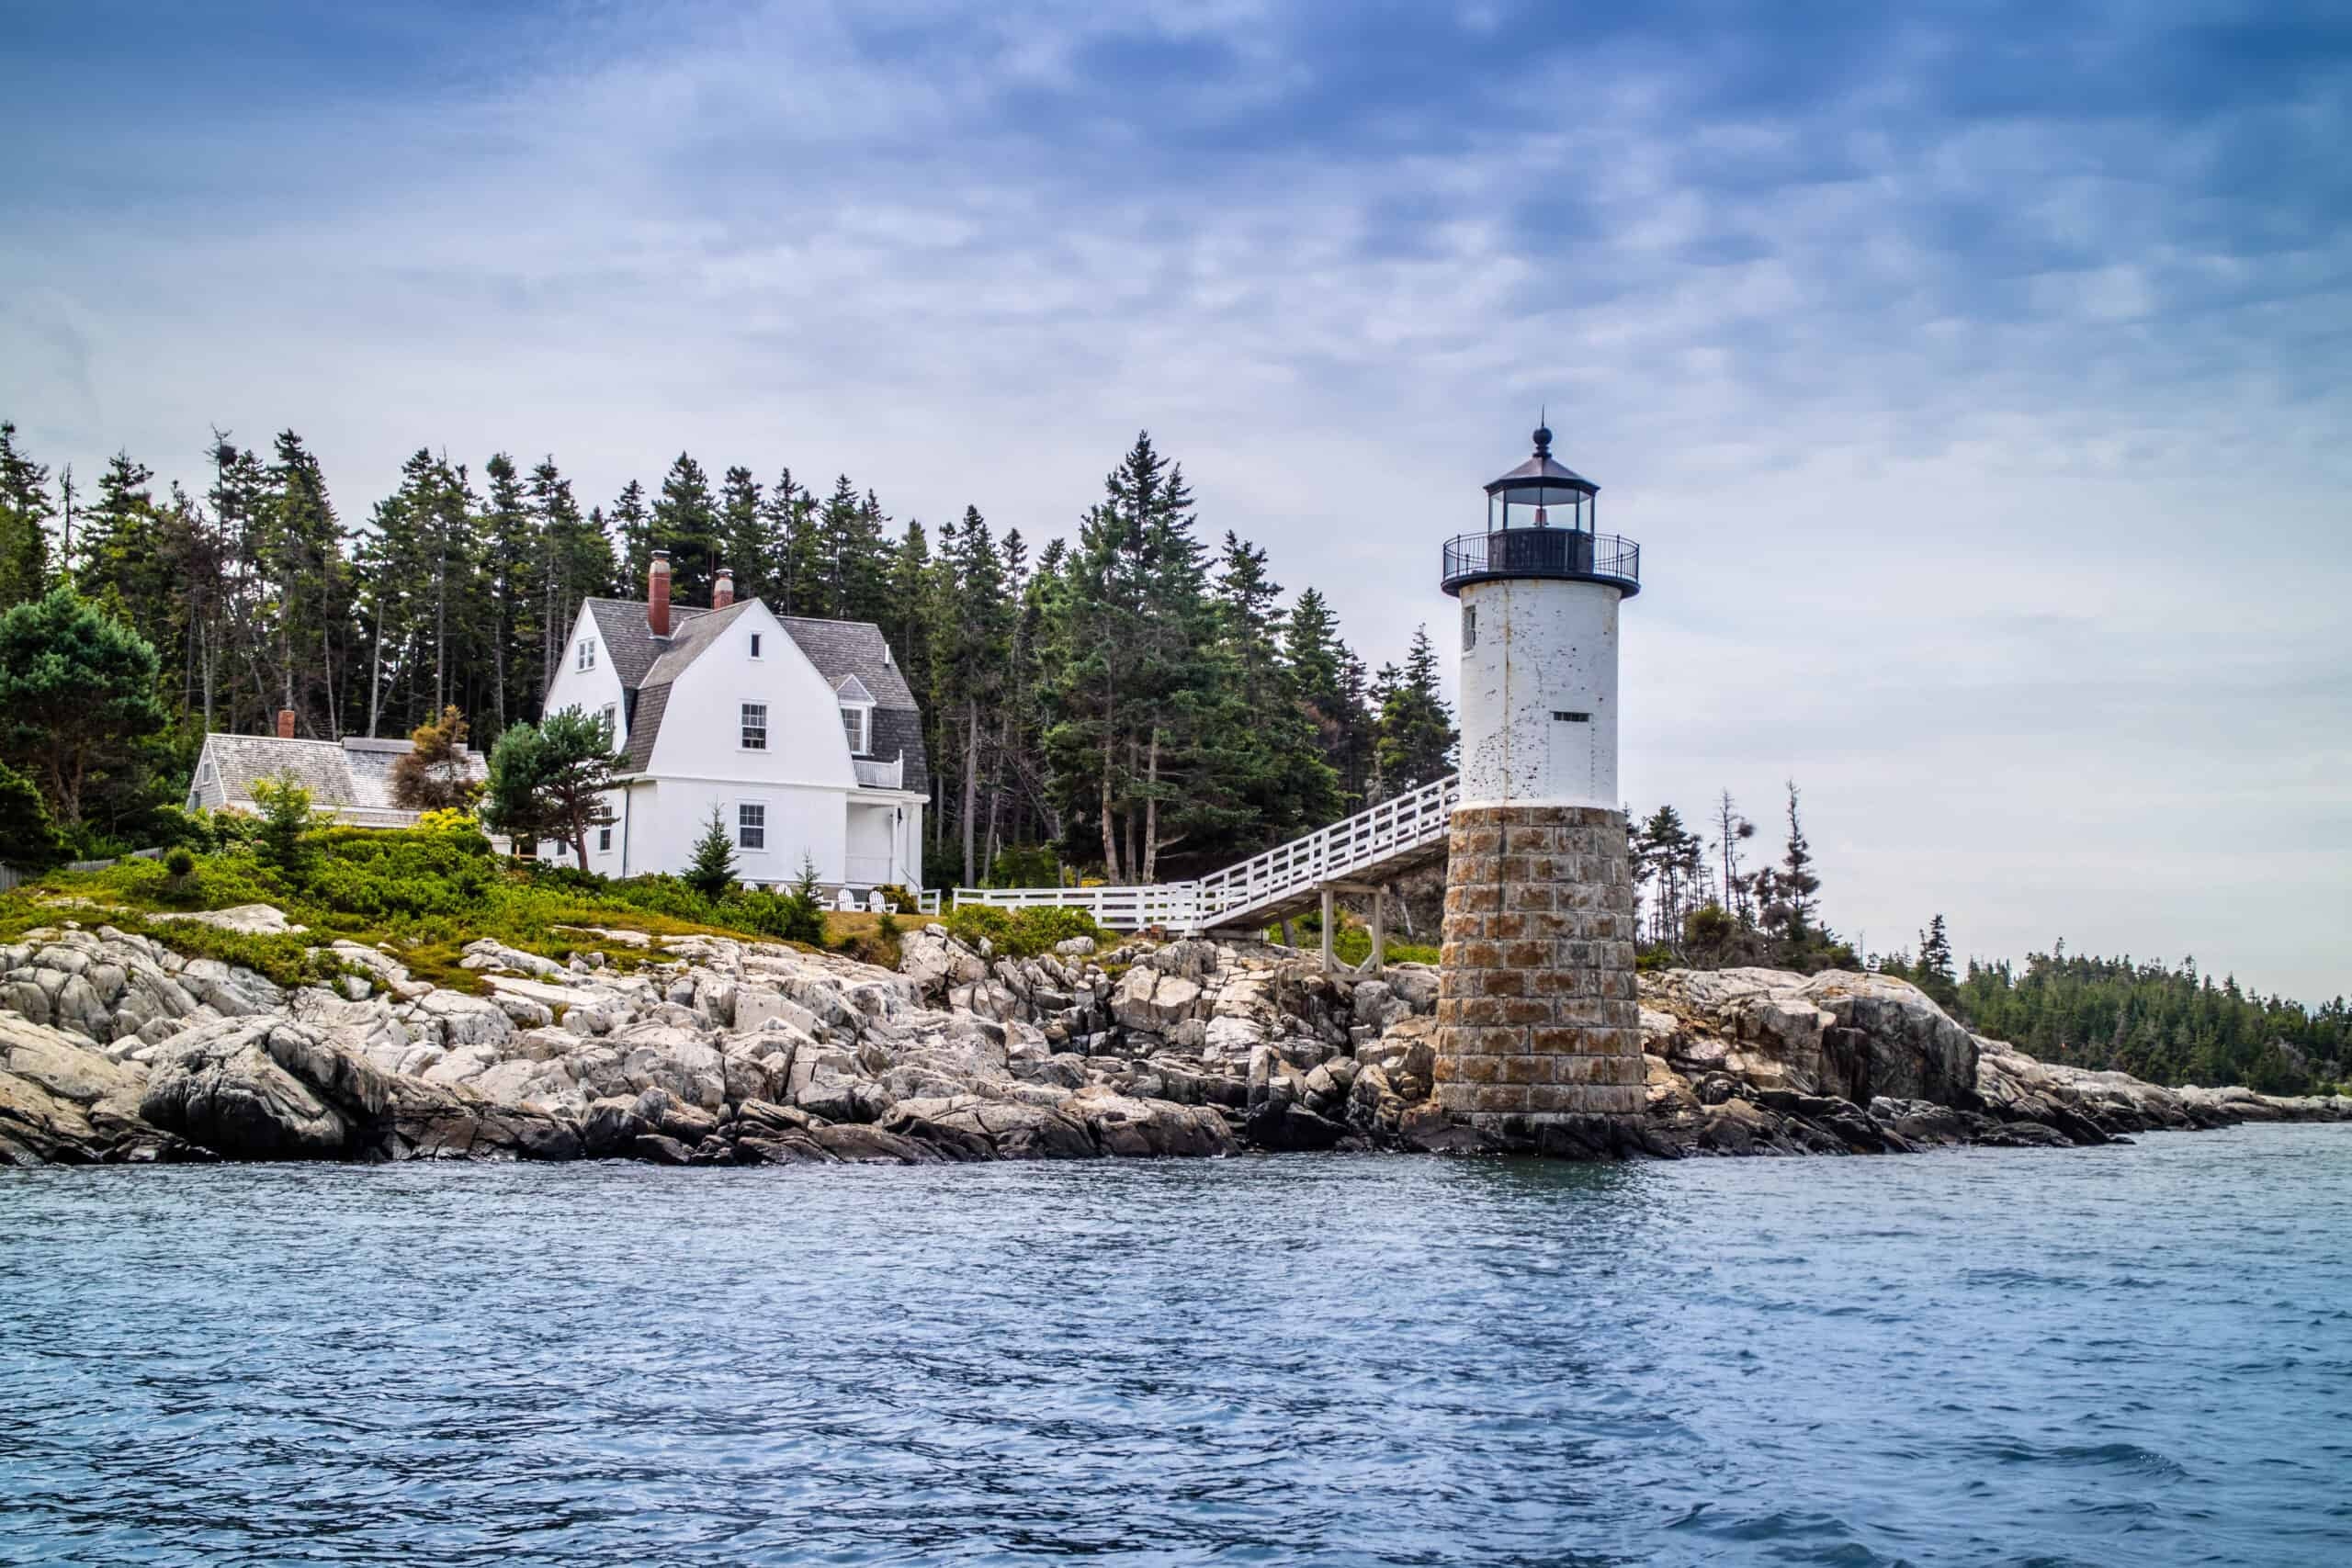 coastal towns in maine - image of a white classic lighthouse with house on a rocky maine coast